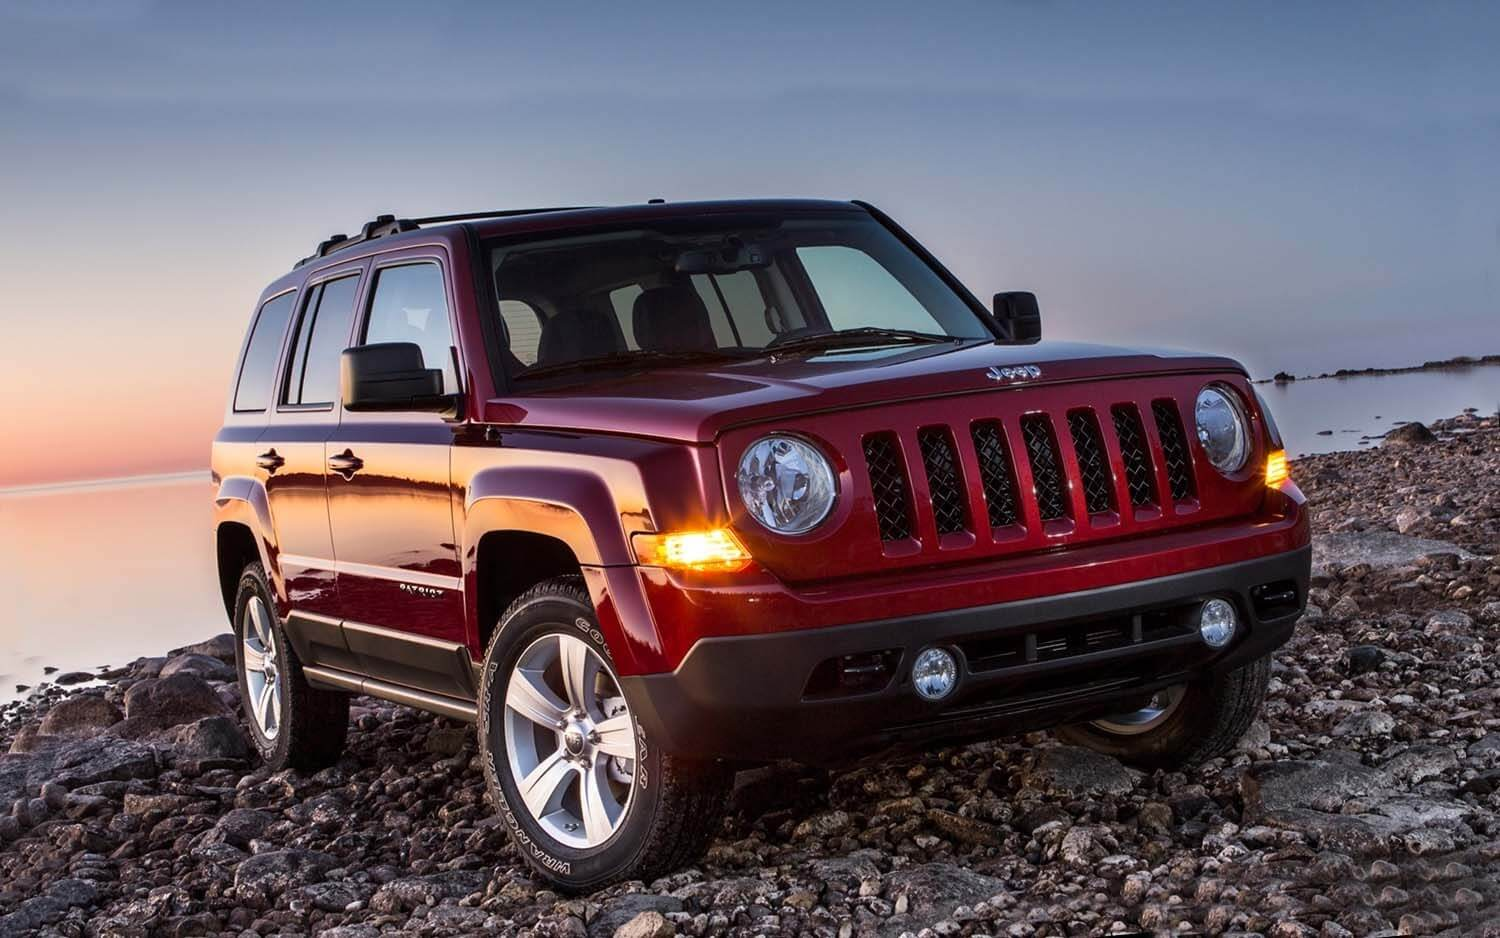 21 New 2020 Jeep Patriot Price